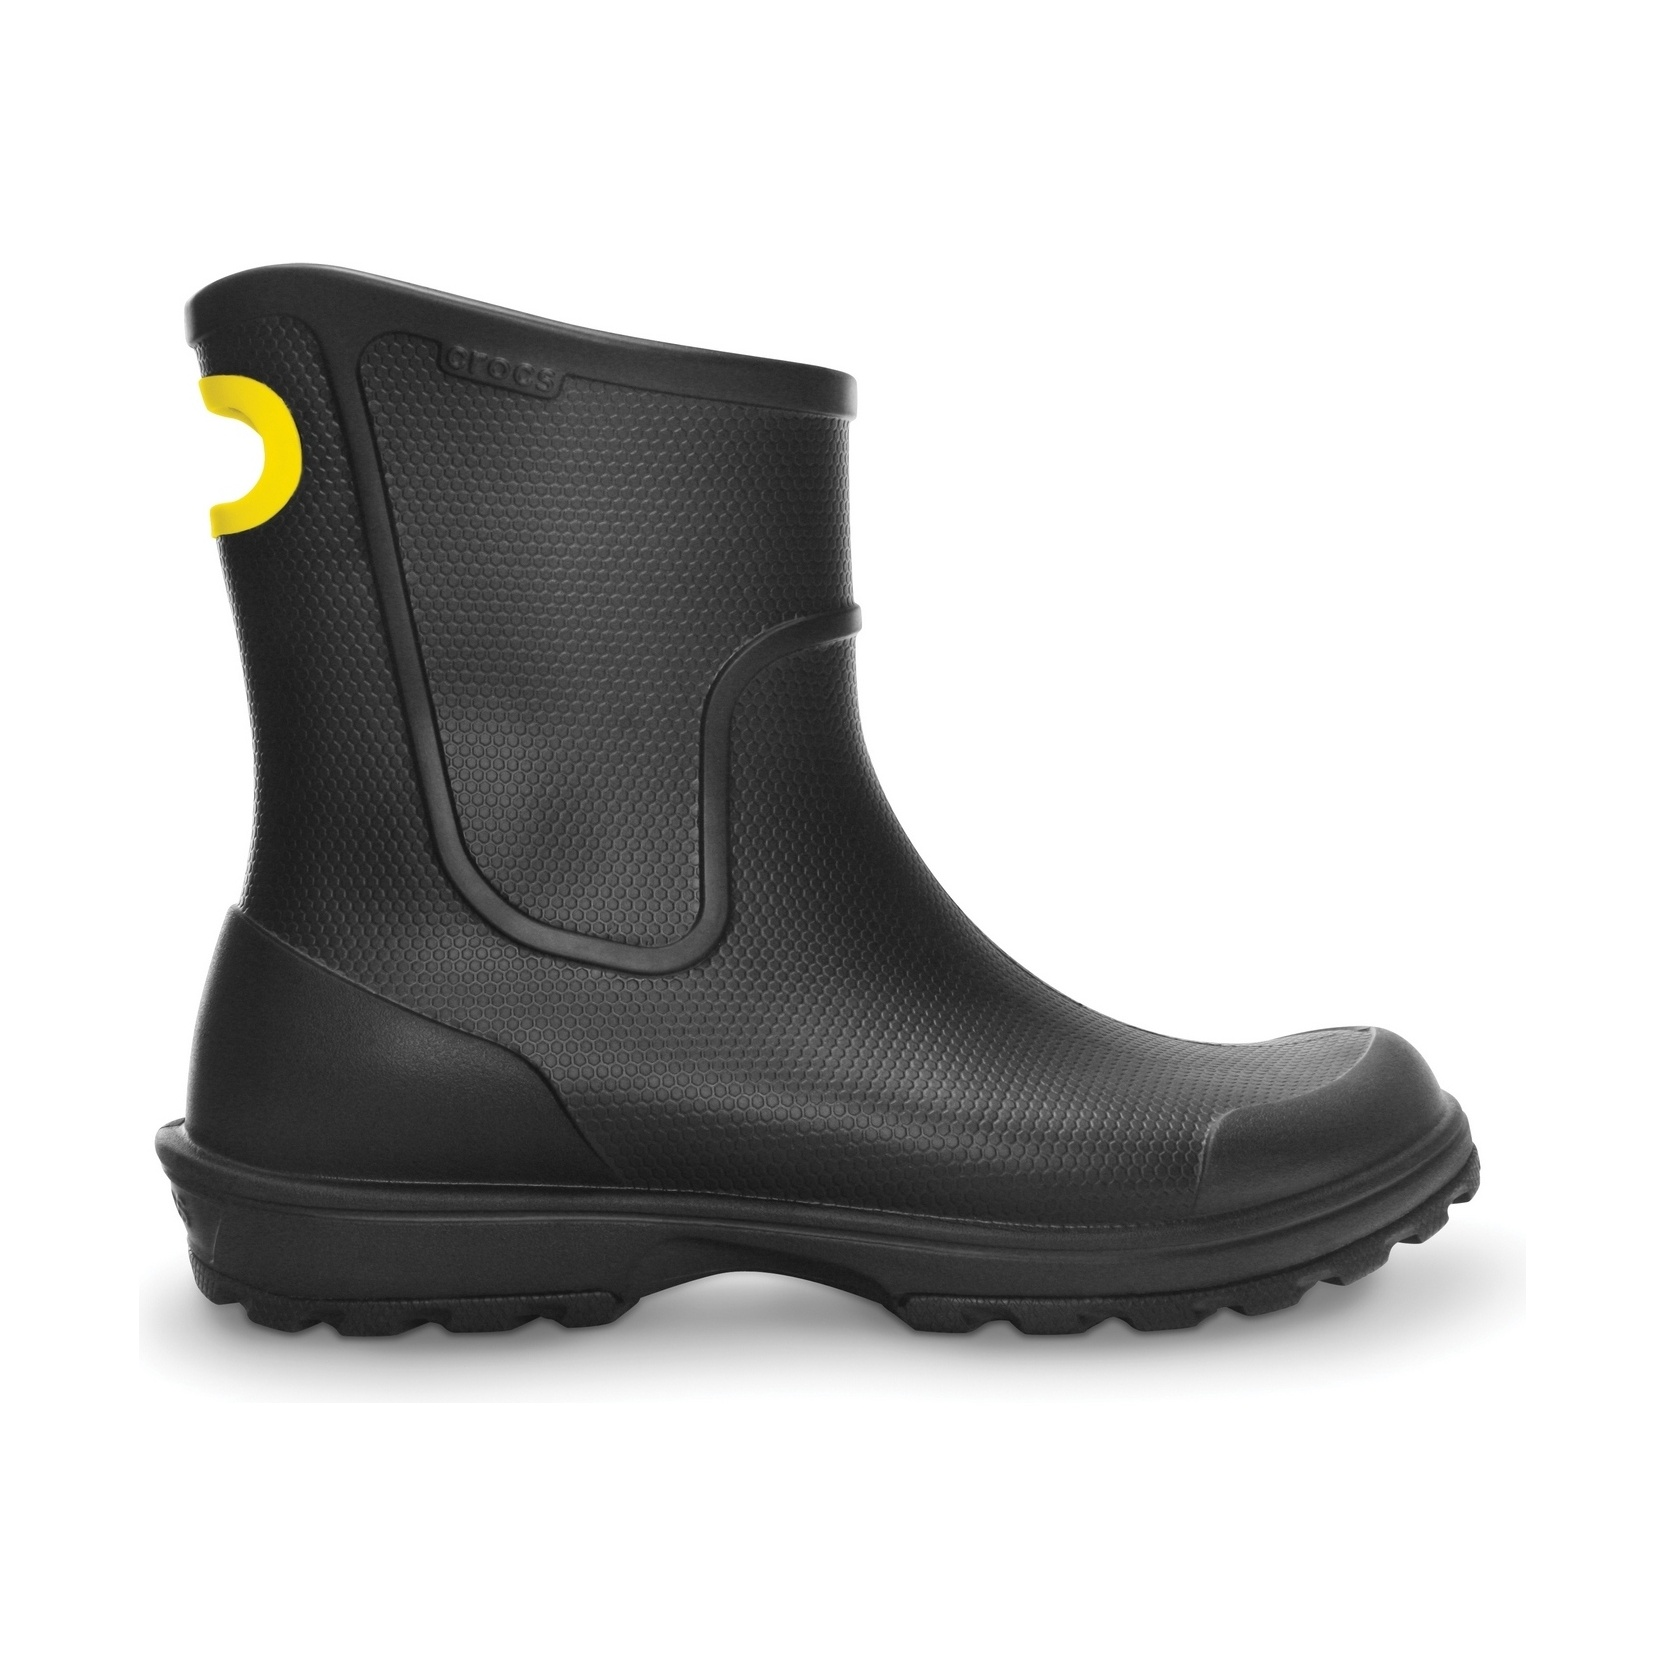 Crocs Mens Wellington Rain Boots | eBay